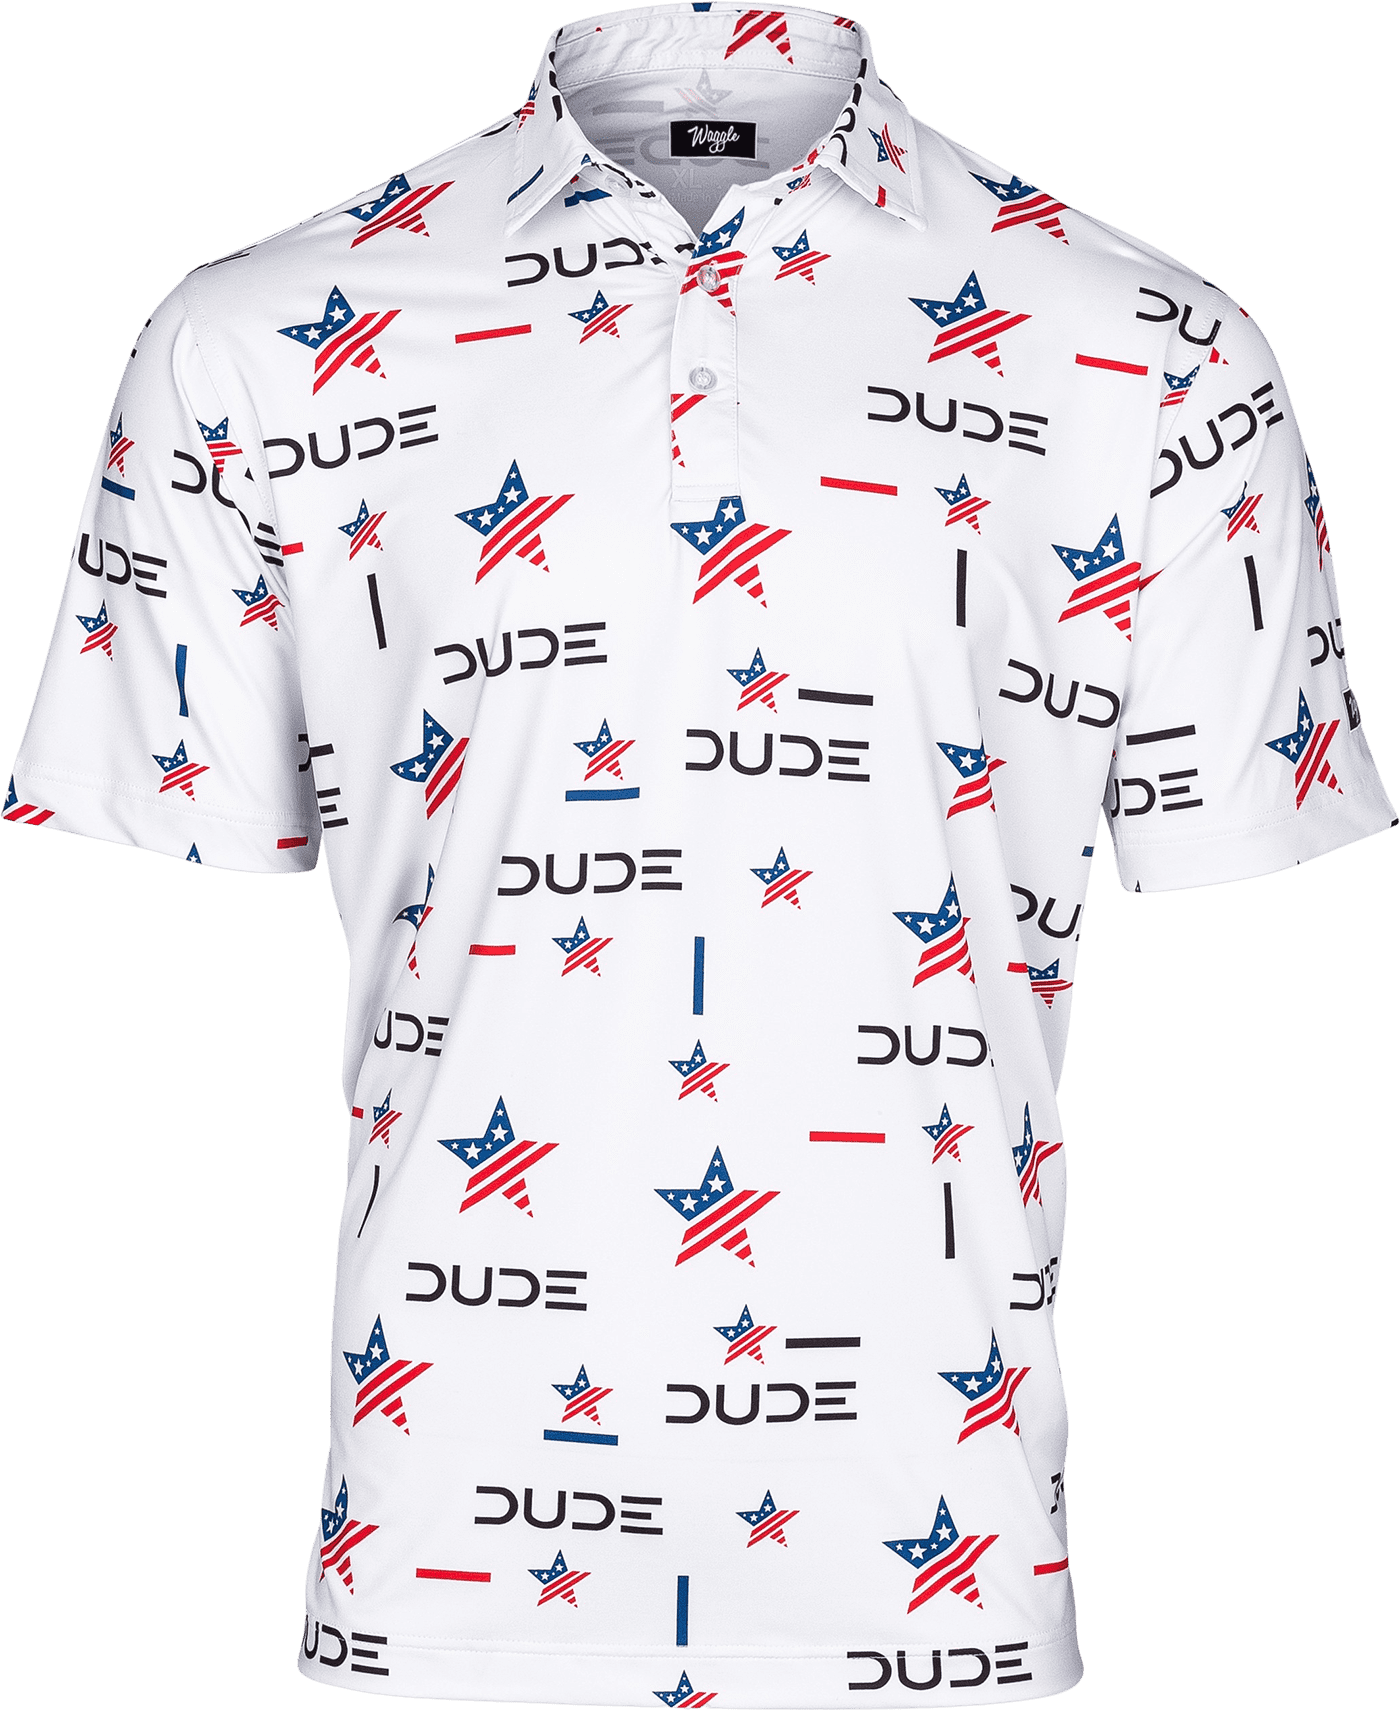 DUDE Golf Polo, USA - DudeProducts